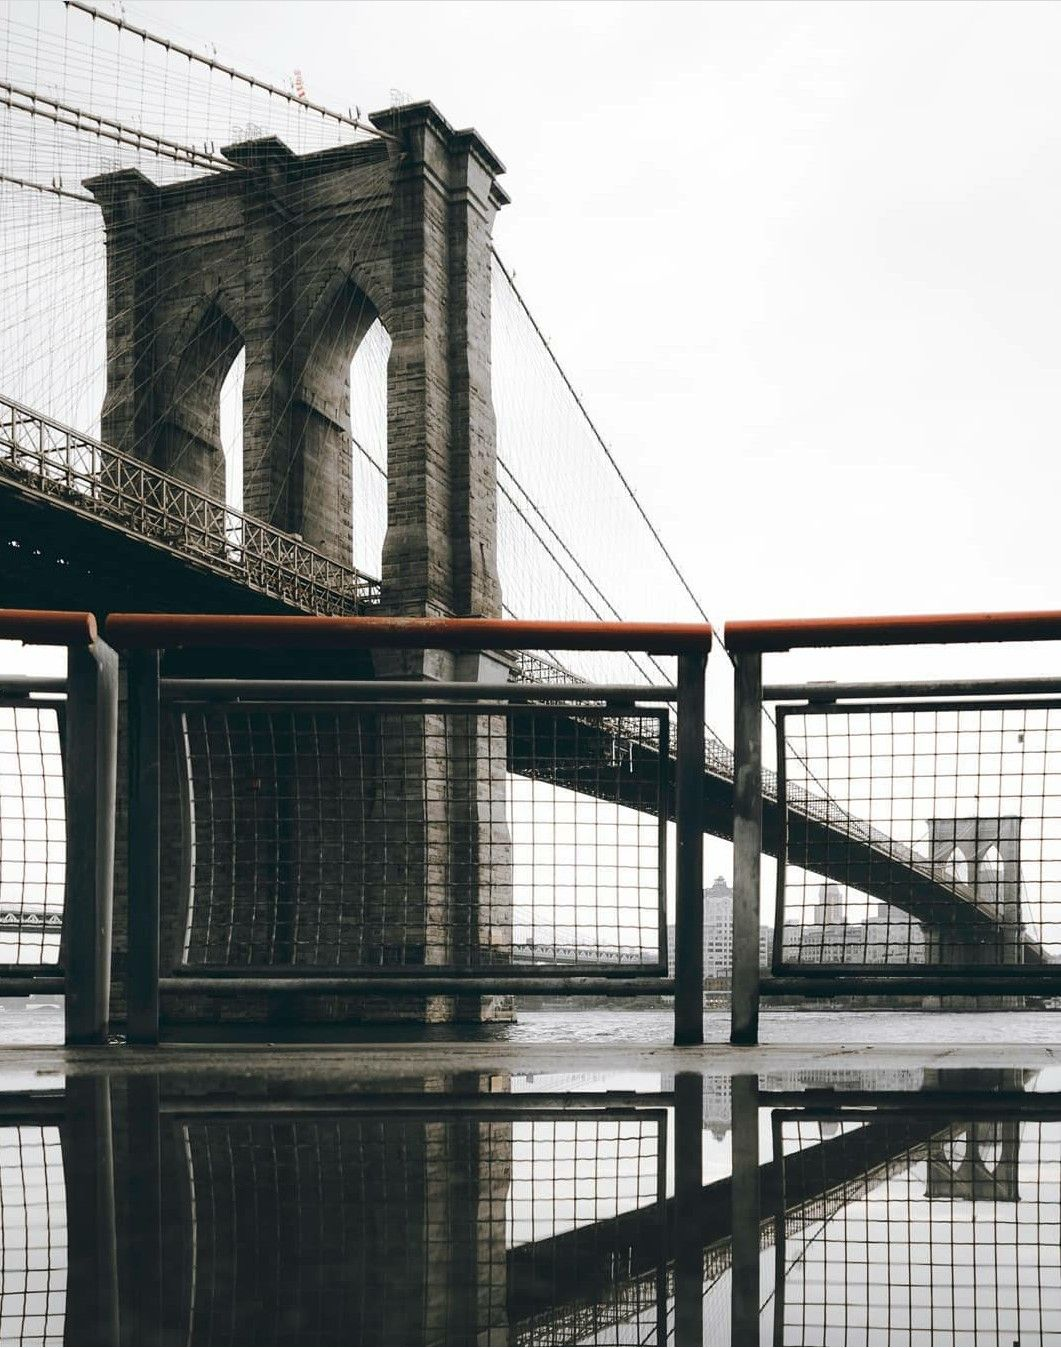 Pin By Rock Babu On Editing Png Picart Editing Download Background Background Brooklyn Bridge